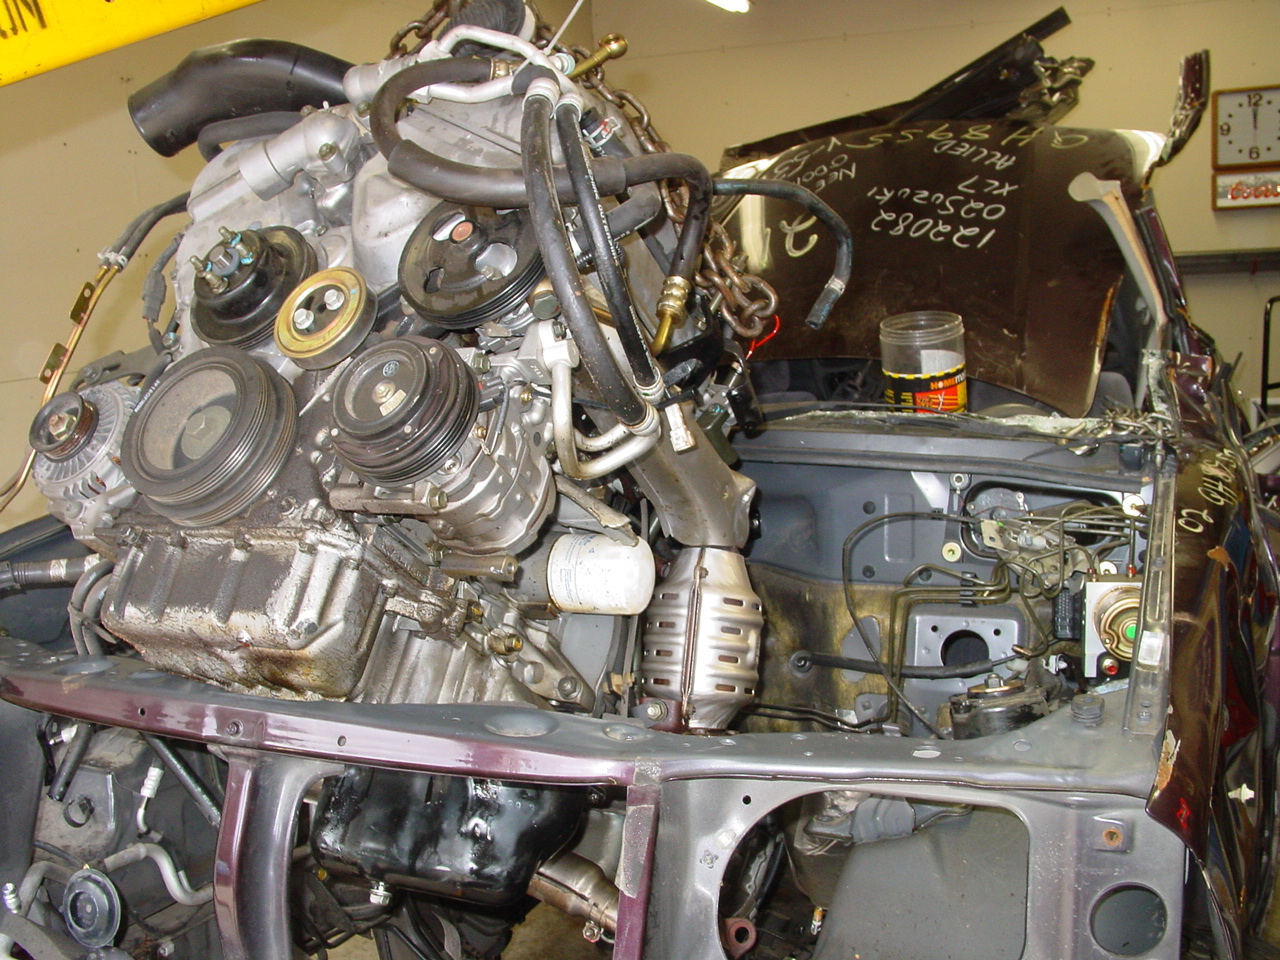 The 2.7-liter engine from the XL7